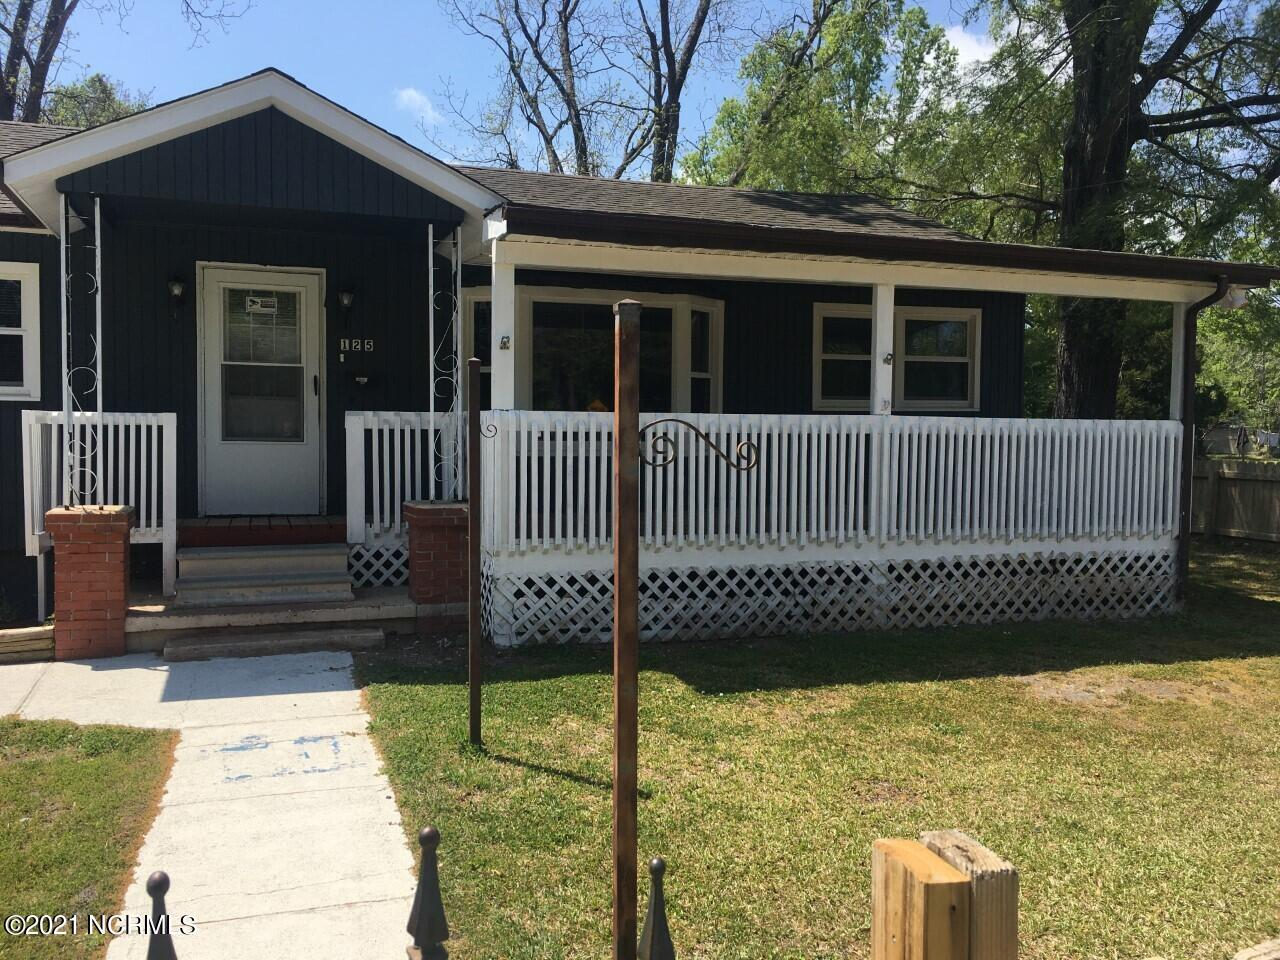 Corner lot, privacy fence, 5 bedroom, 2 bath, enclosed back porch, front porch, privacy fence, detached double car garage.